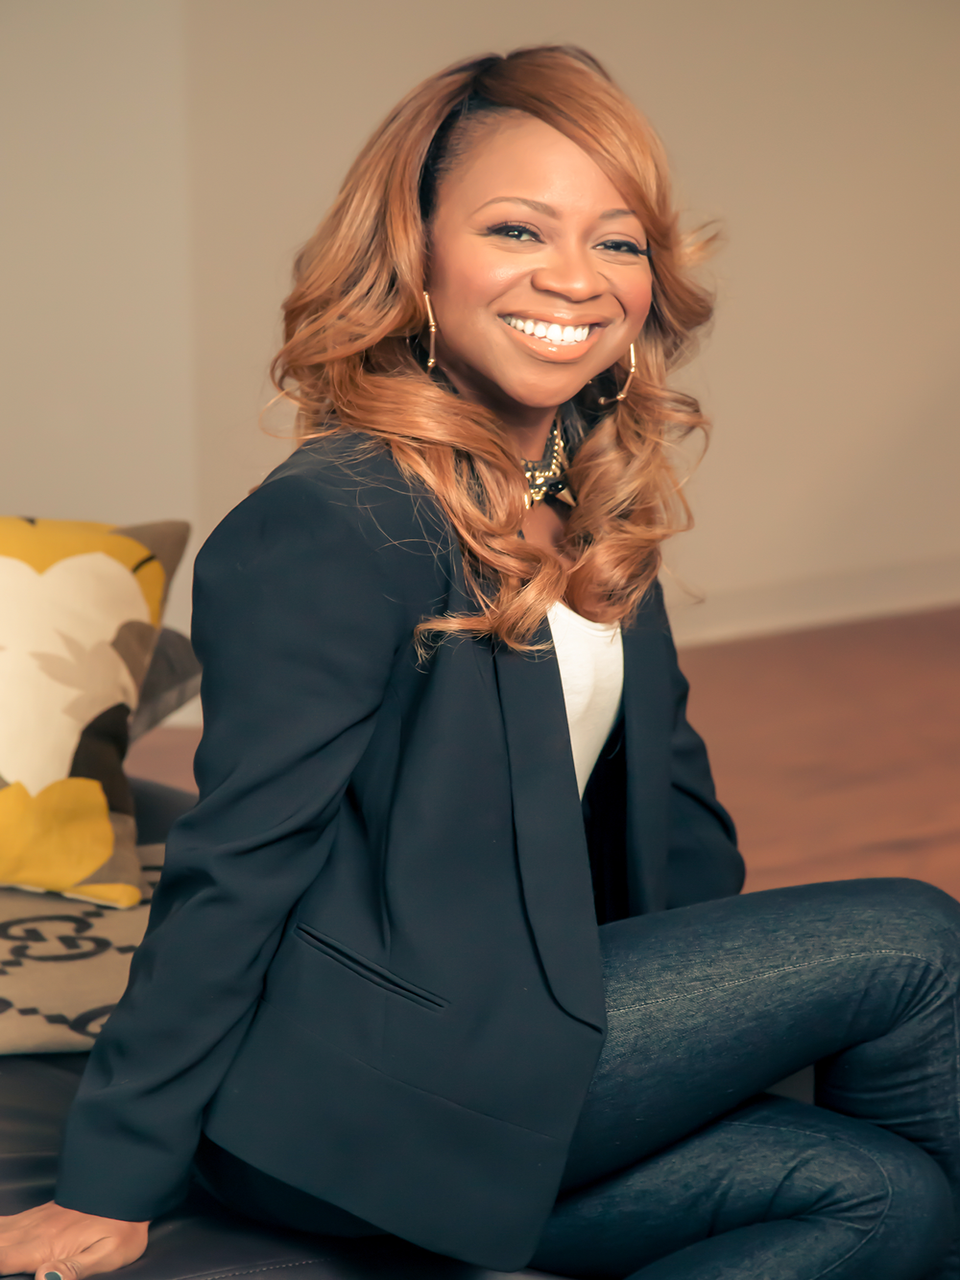 Post Divorce, Gina Neely Still Loves Being In Love And 'Wants To Be Married Again'